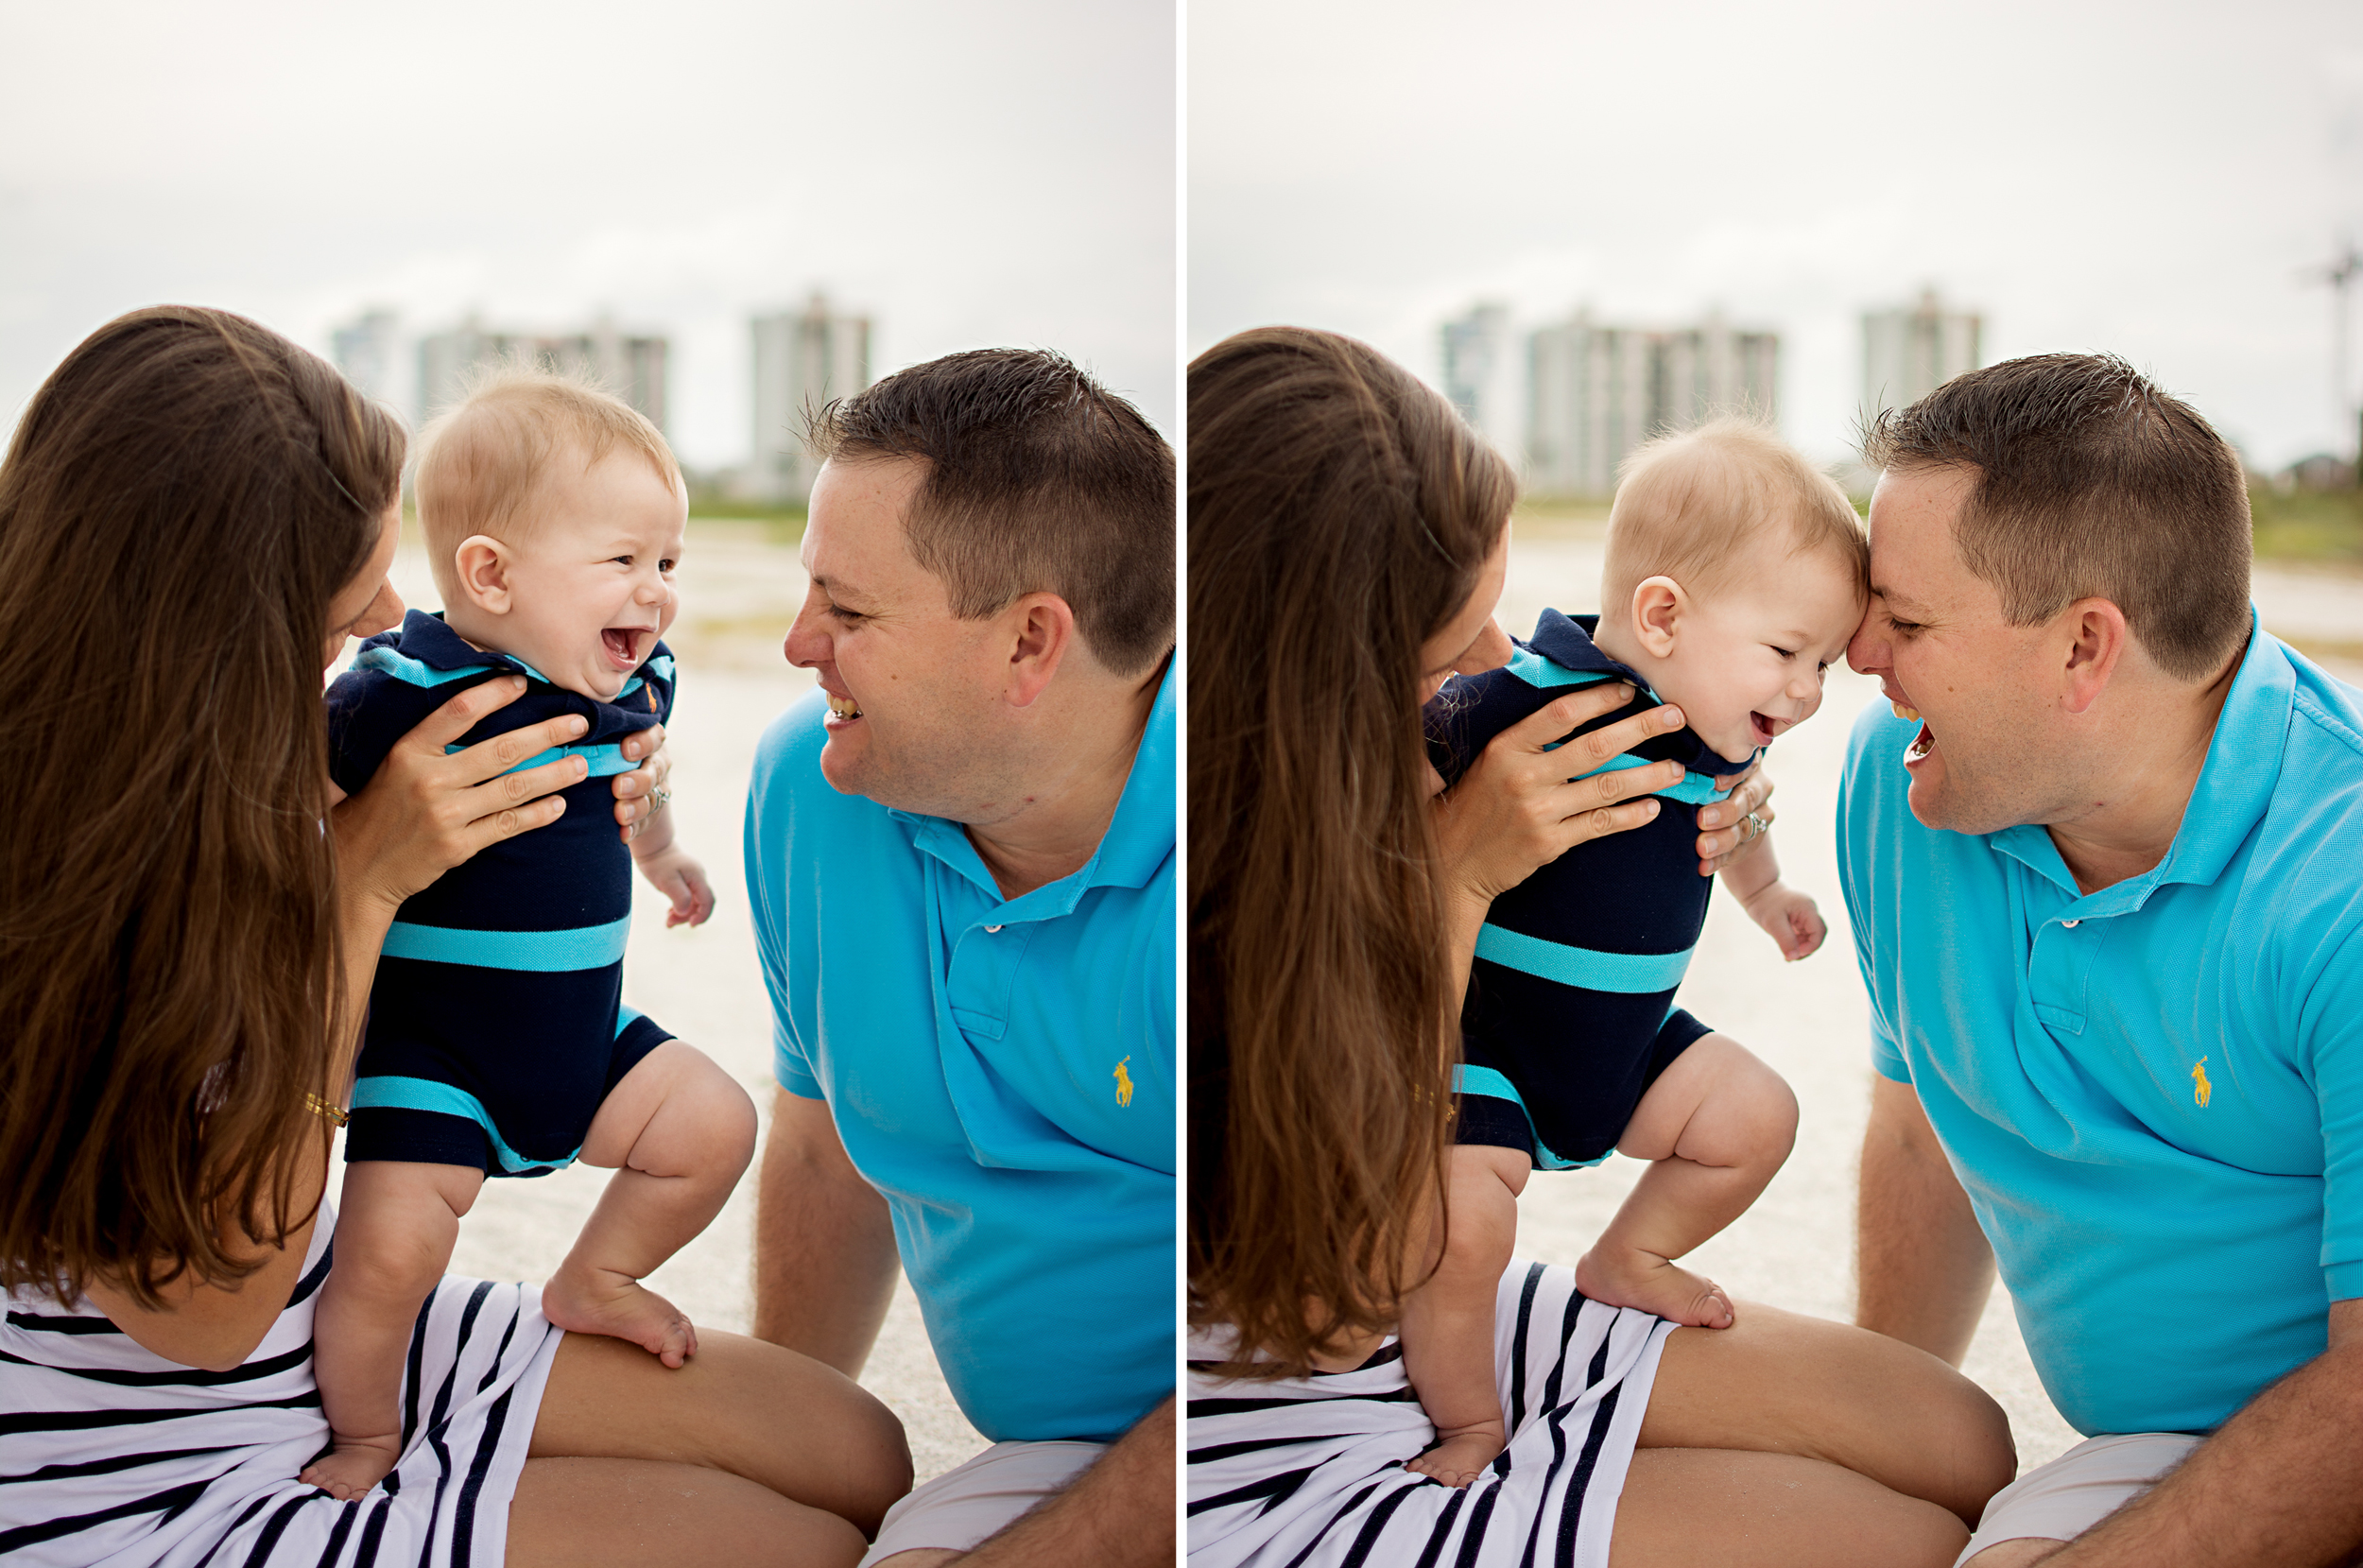 Carlie-Chew-Photography-Family-Photographer-Tampa-Florida